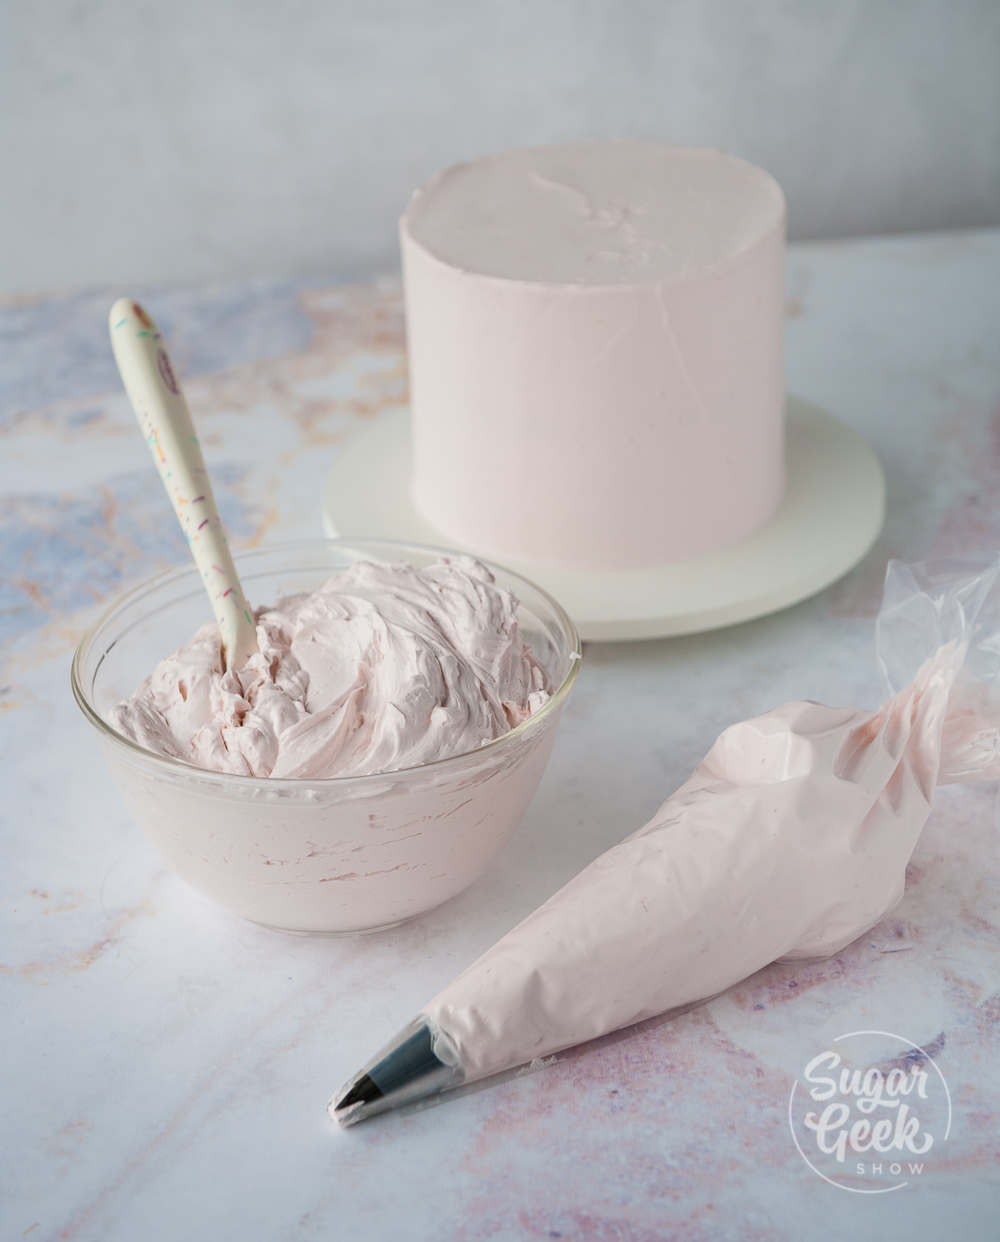 italian meringue buttercream in a bowl, piping bag and frosted no a cake